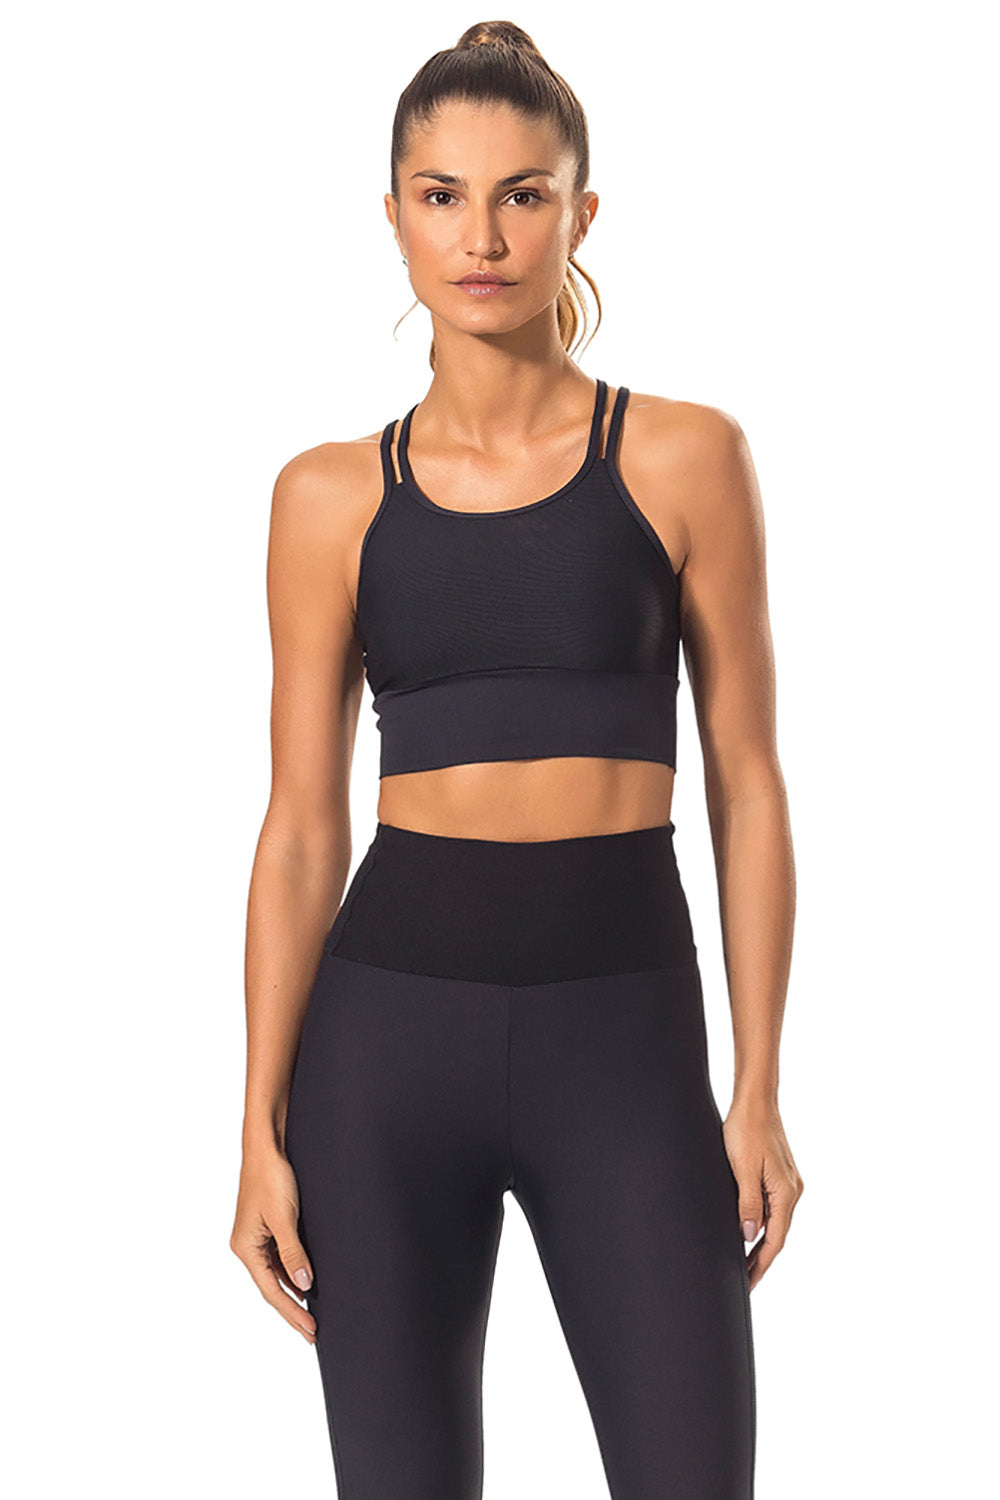 Light Emotion Strappy Top, Live!